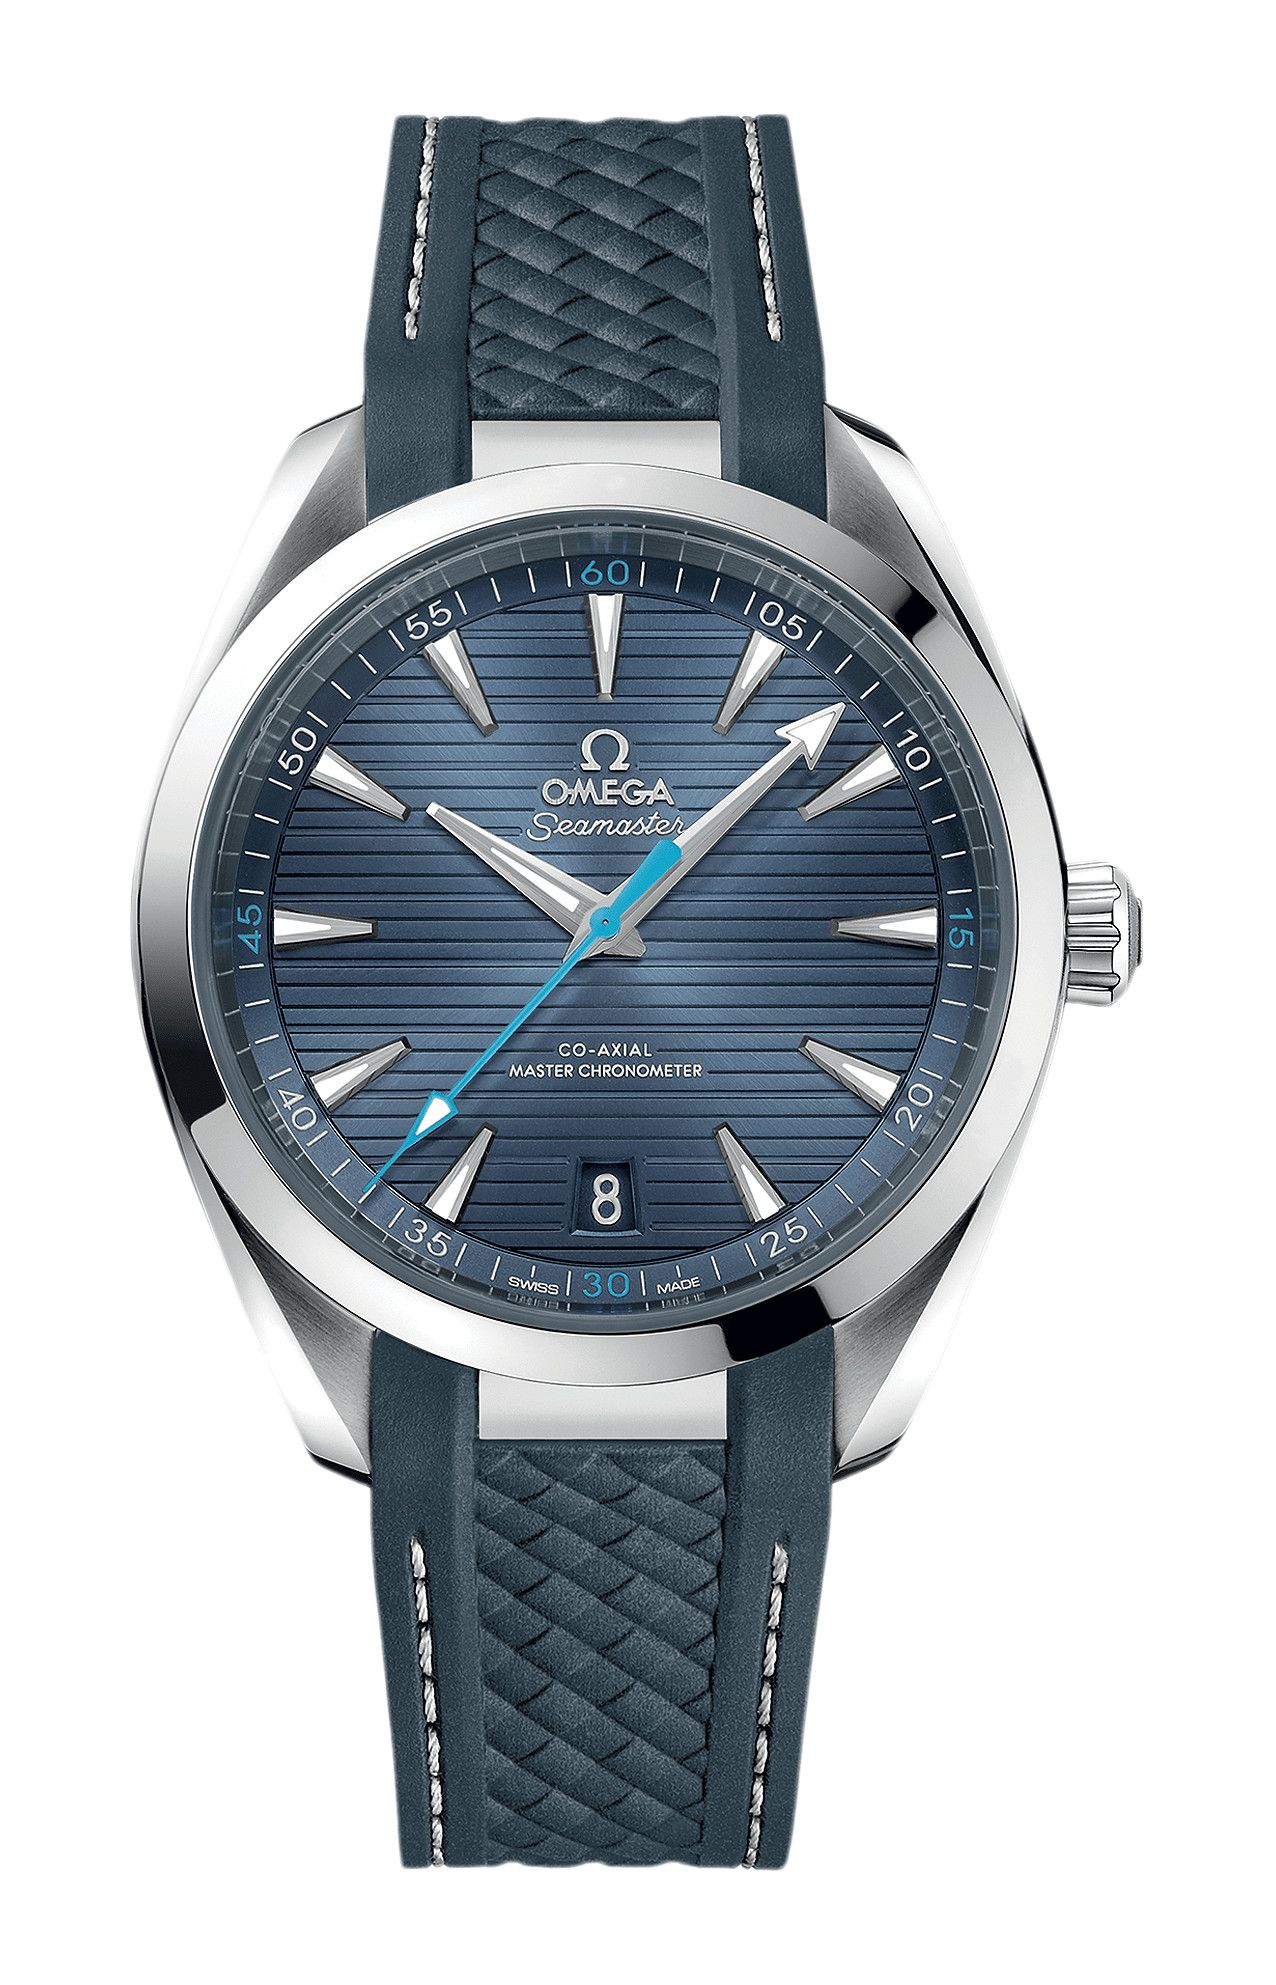 SEAMASTER AQUA TERRA 150M OMEGA CO-AXIAL MASTER CHRONOMETER 41 MM - 220.12.41.21.03.002